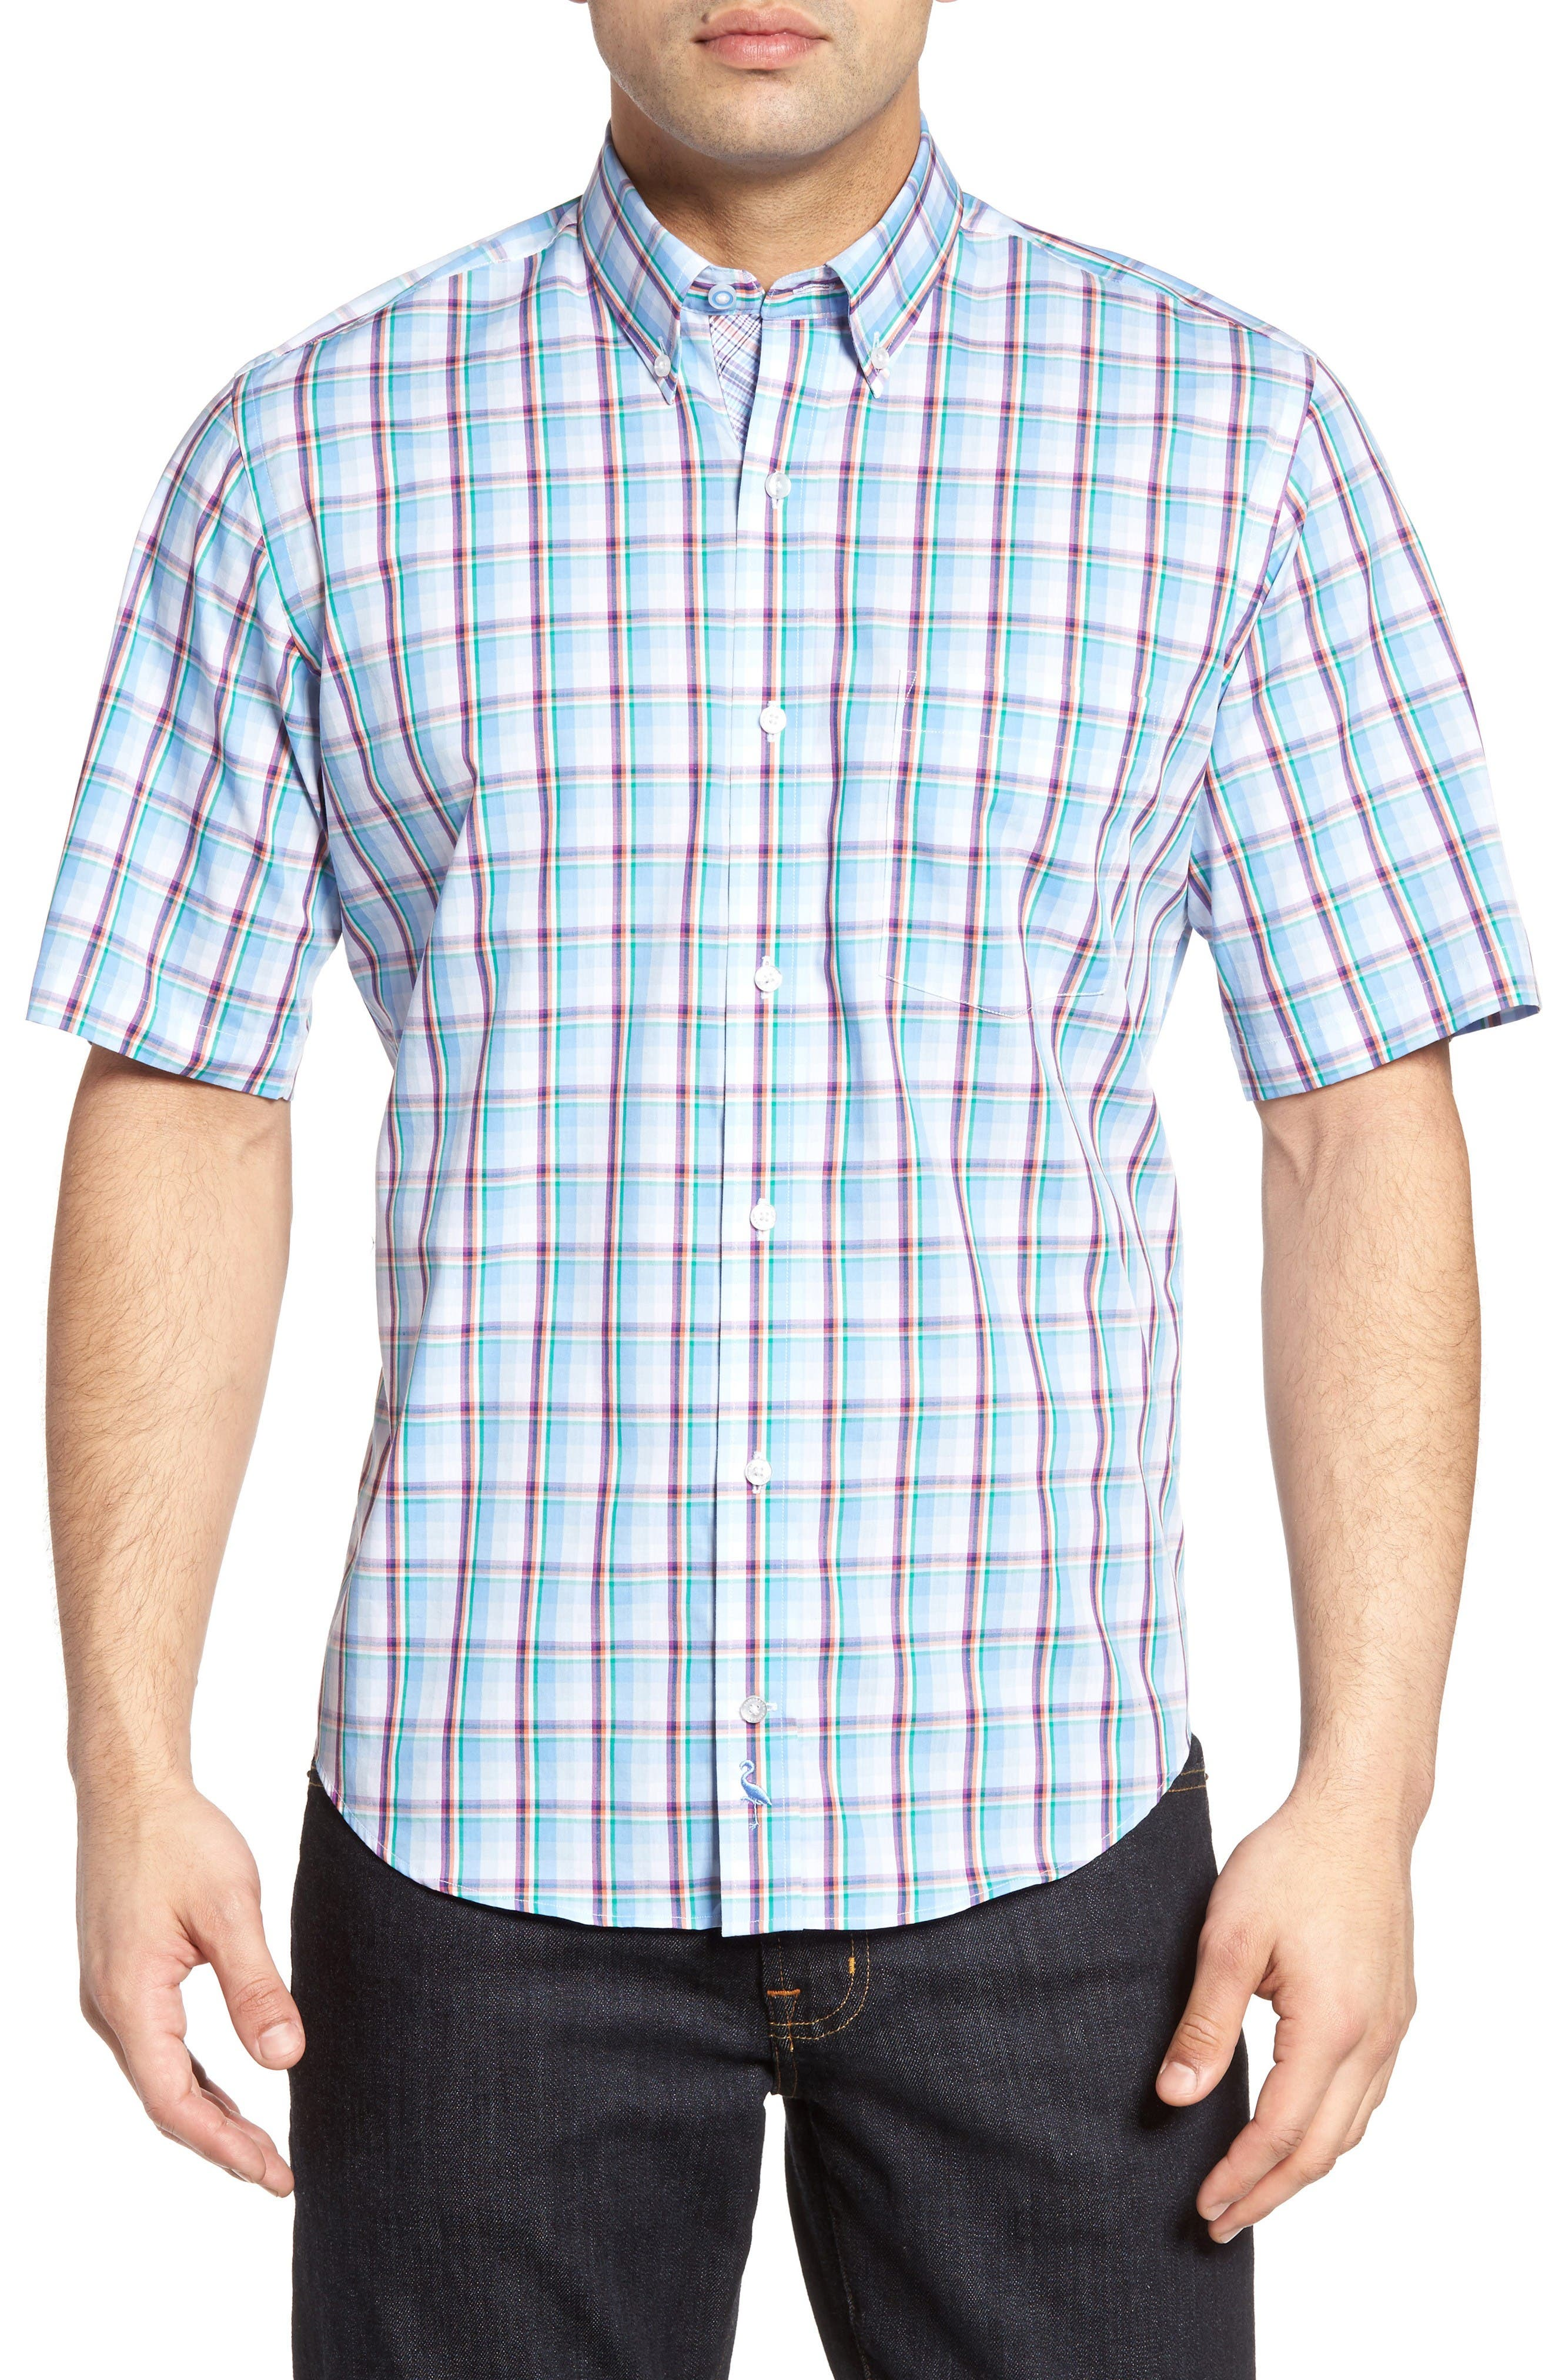 Alternate Image 1 Selected - TailorByrd Pinyon Plaid Sport Shirt